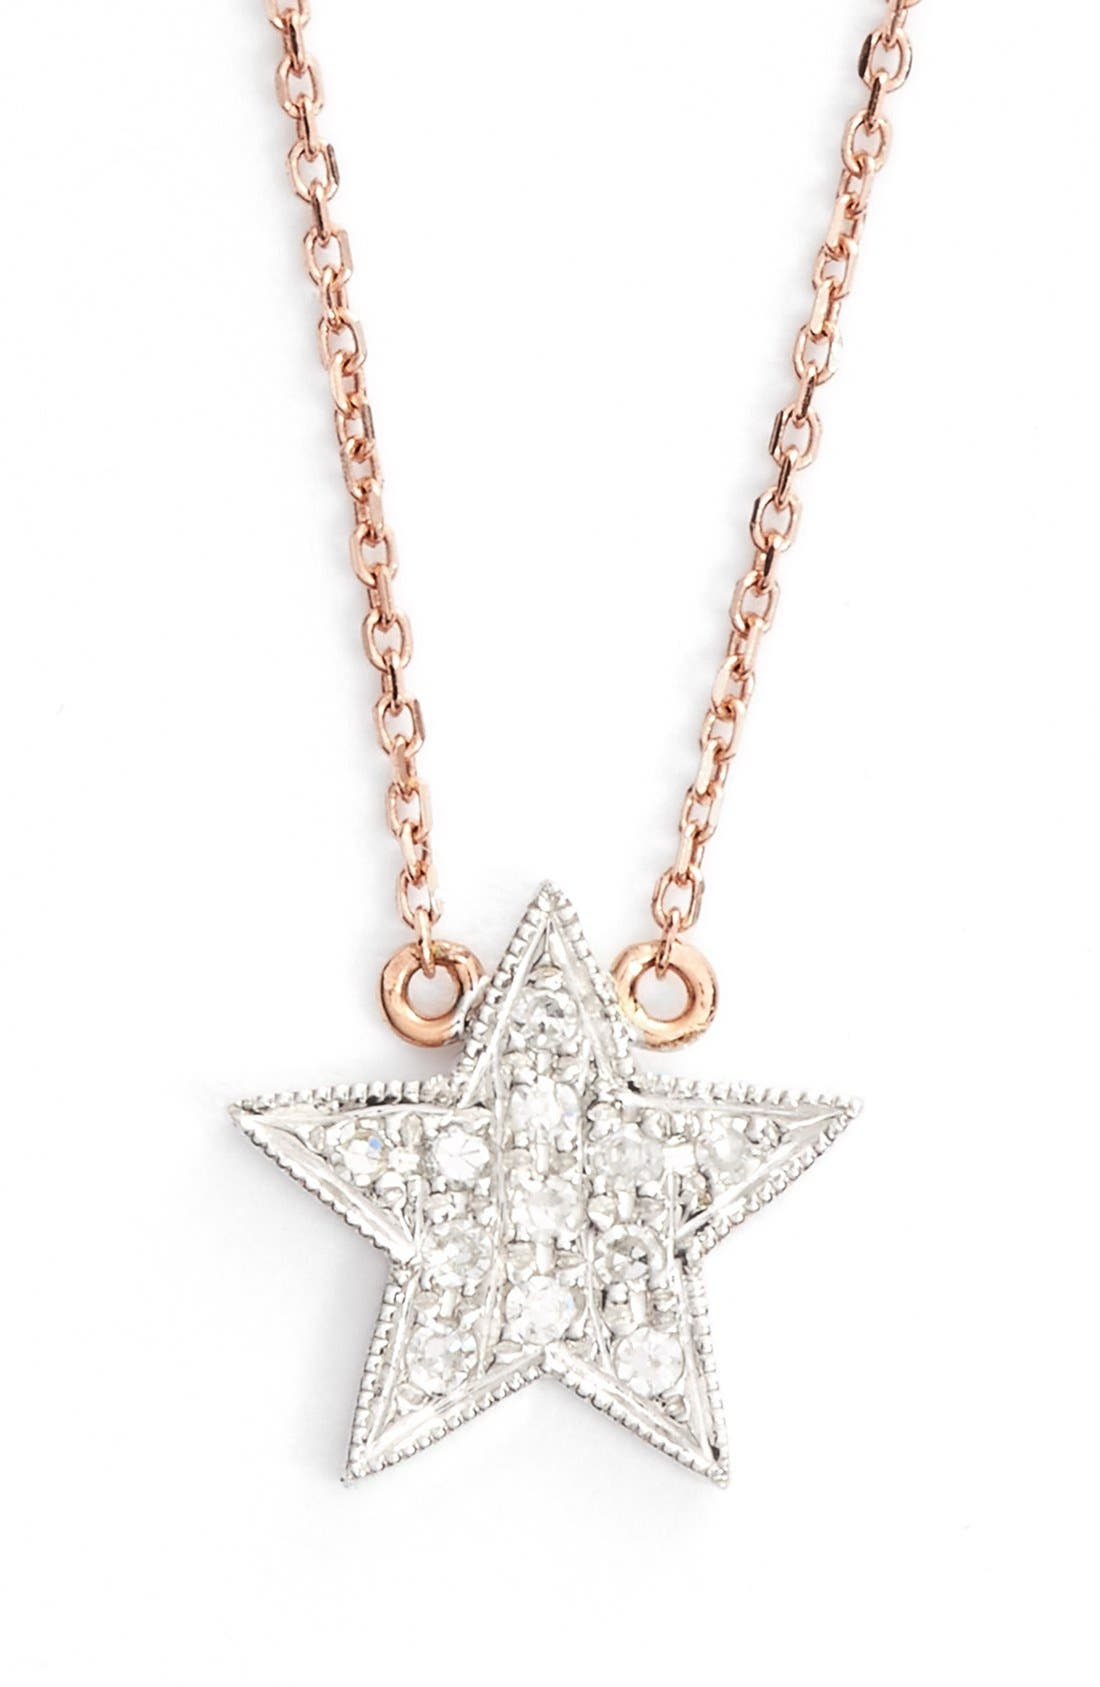 Alternate Image 1 Selected - Dana Rebecca Designs 'Julianne Himiko' Diamond Star Pendant Necklace